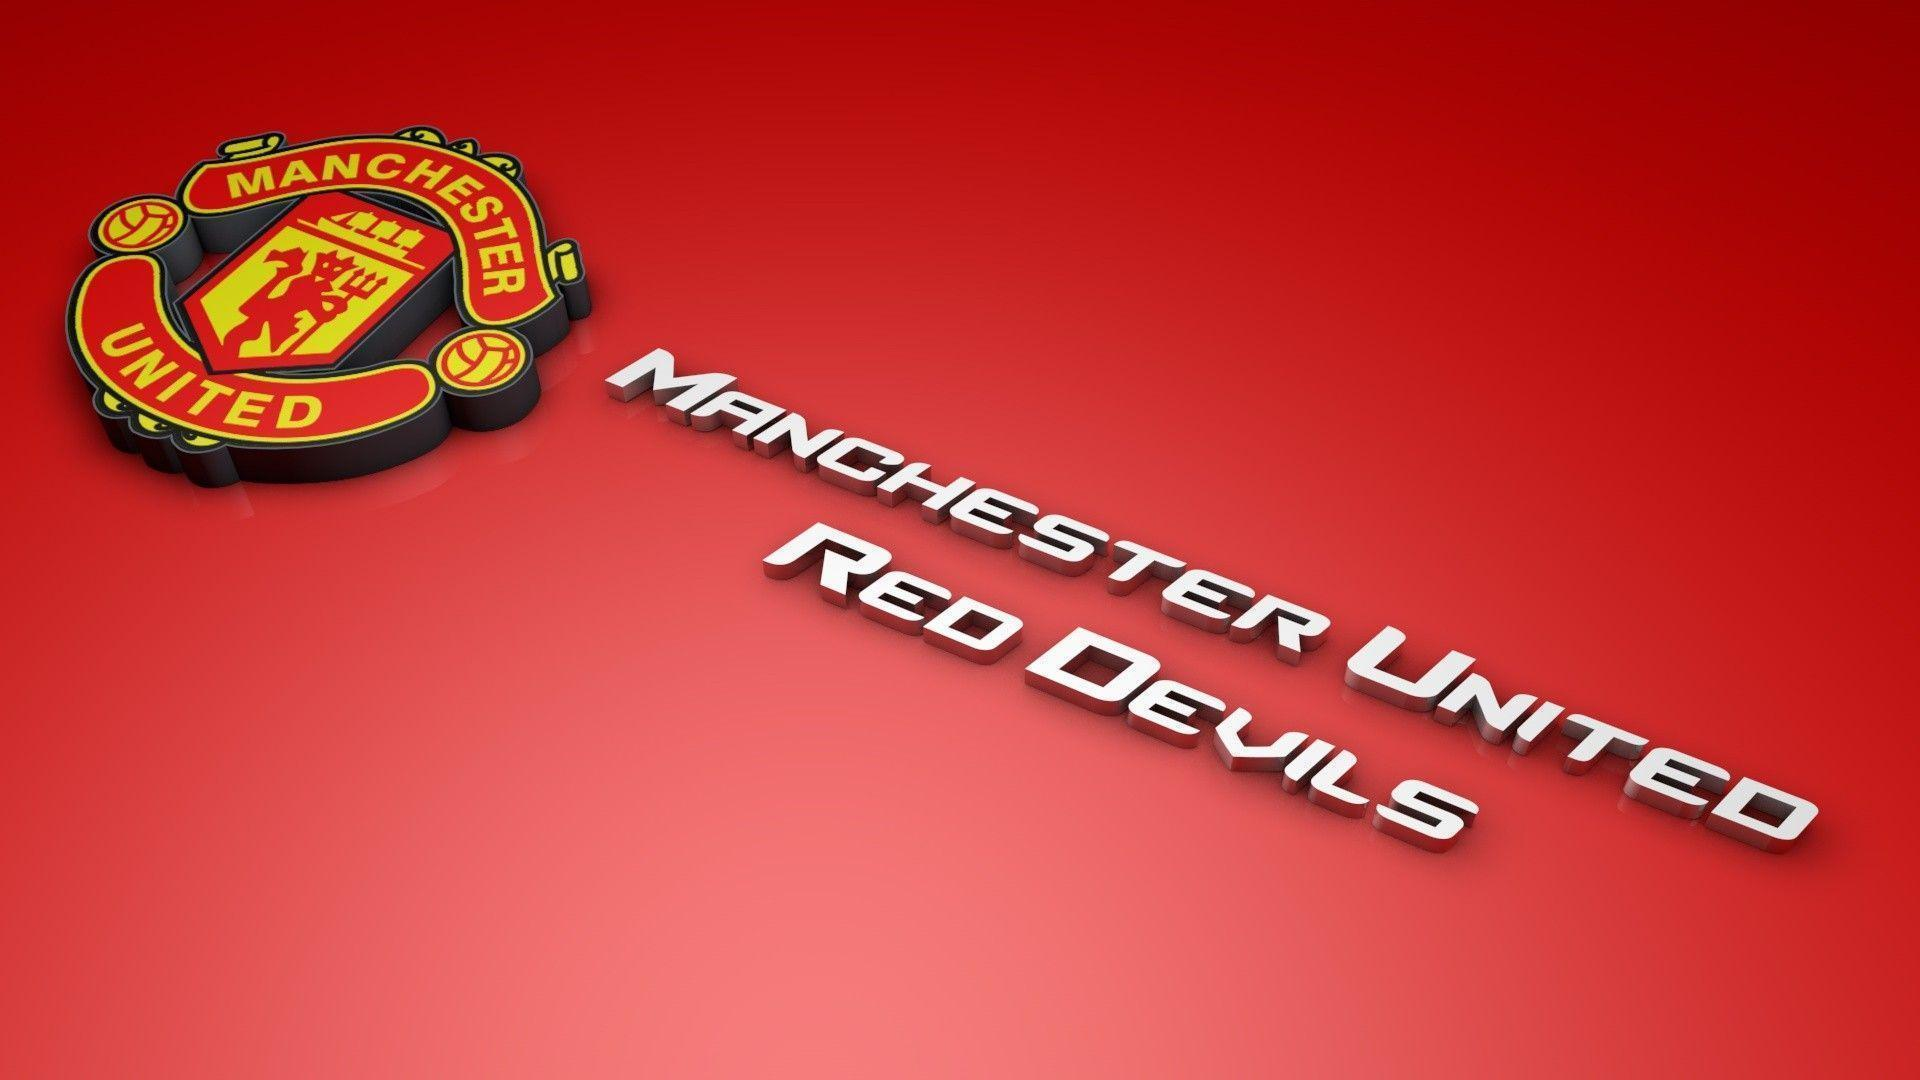 Manchester united wallpapers hd wallpaper cave manchester united logo 3d wallpaper hd desktop 4634 voltagebd Images